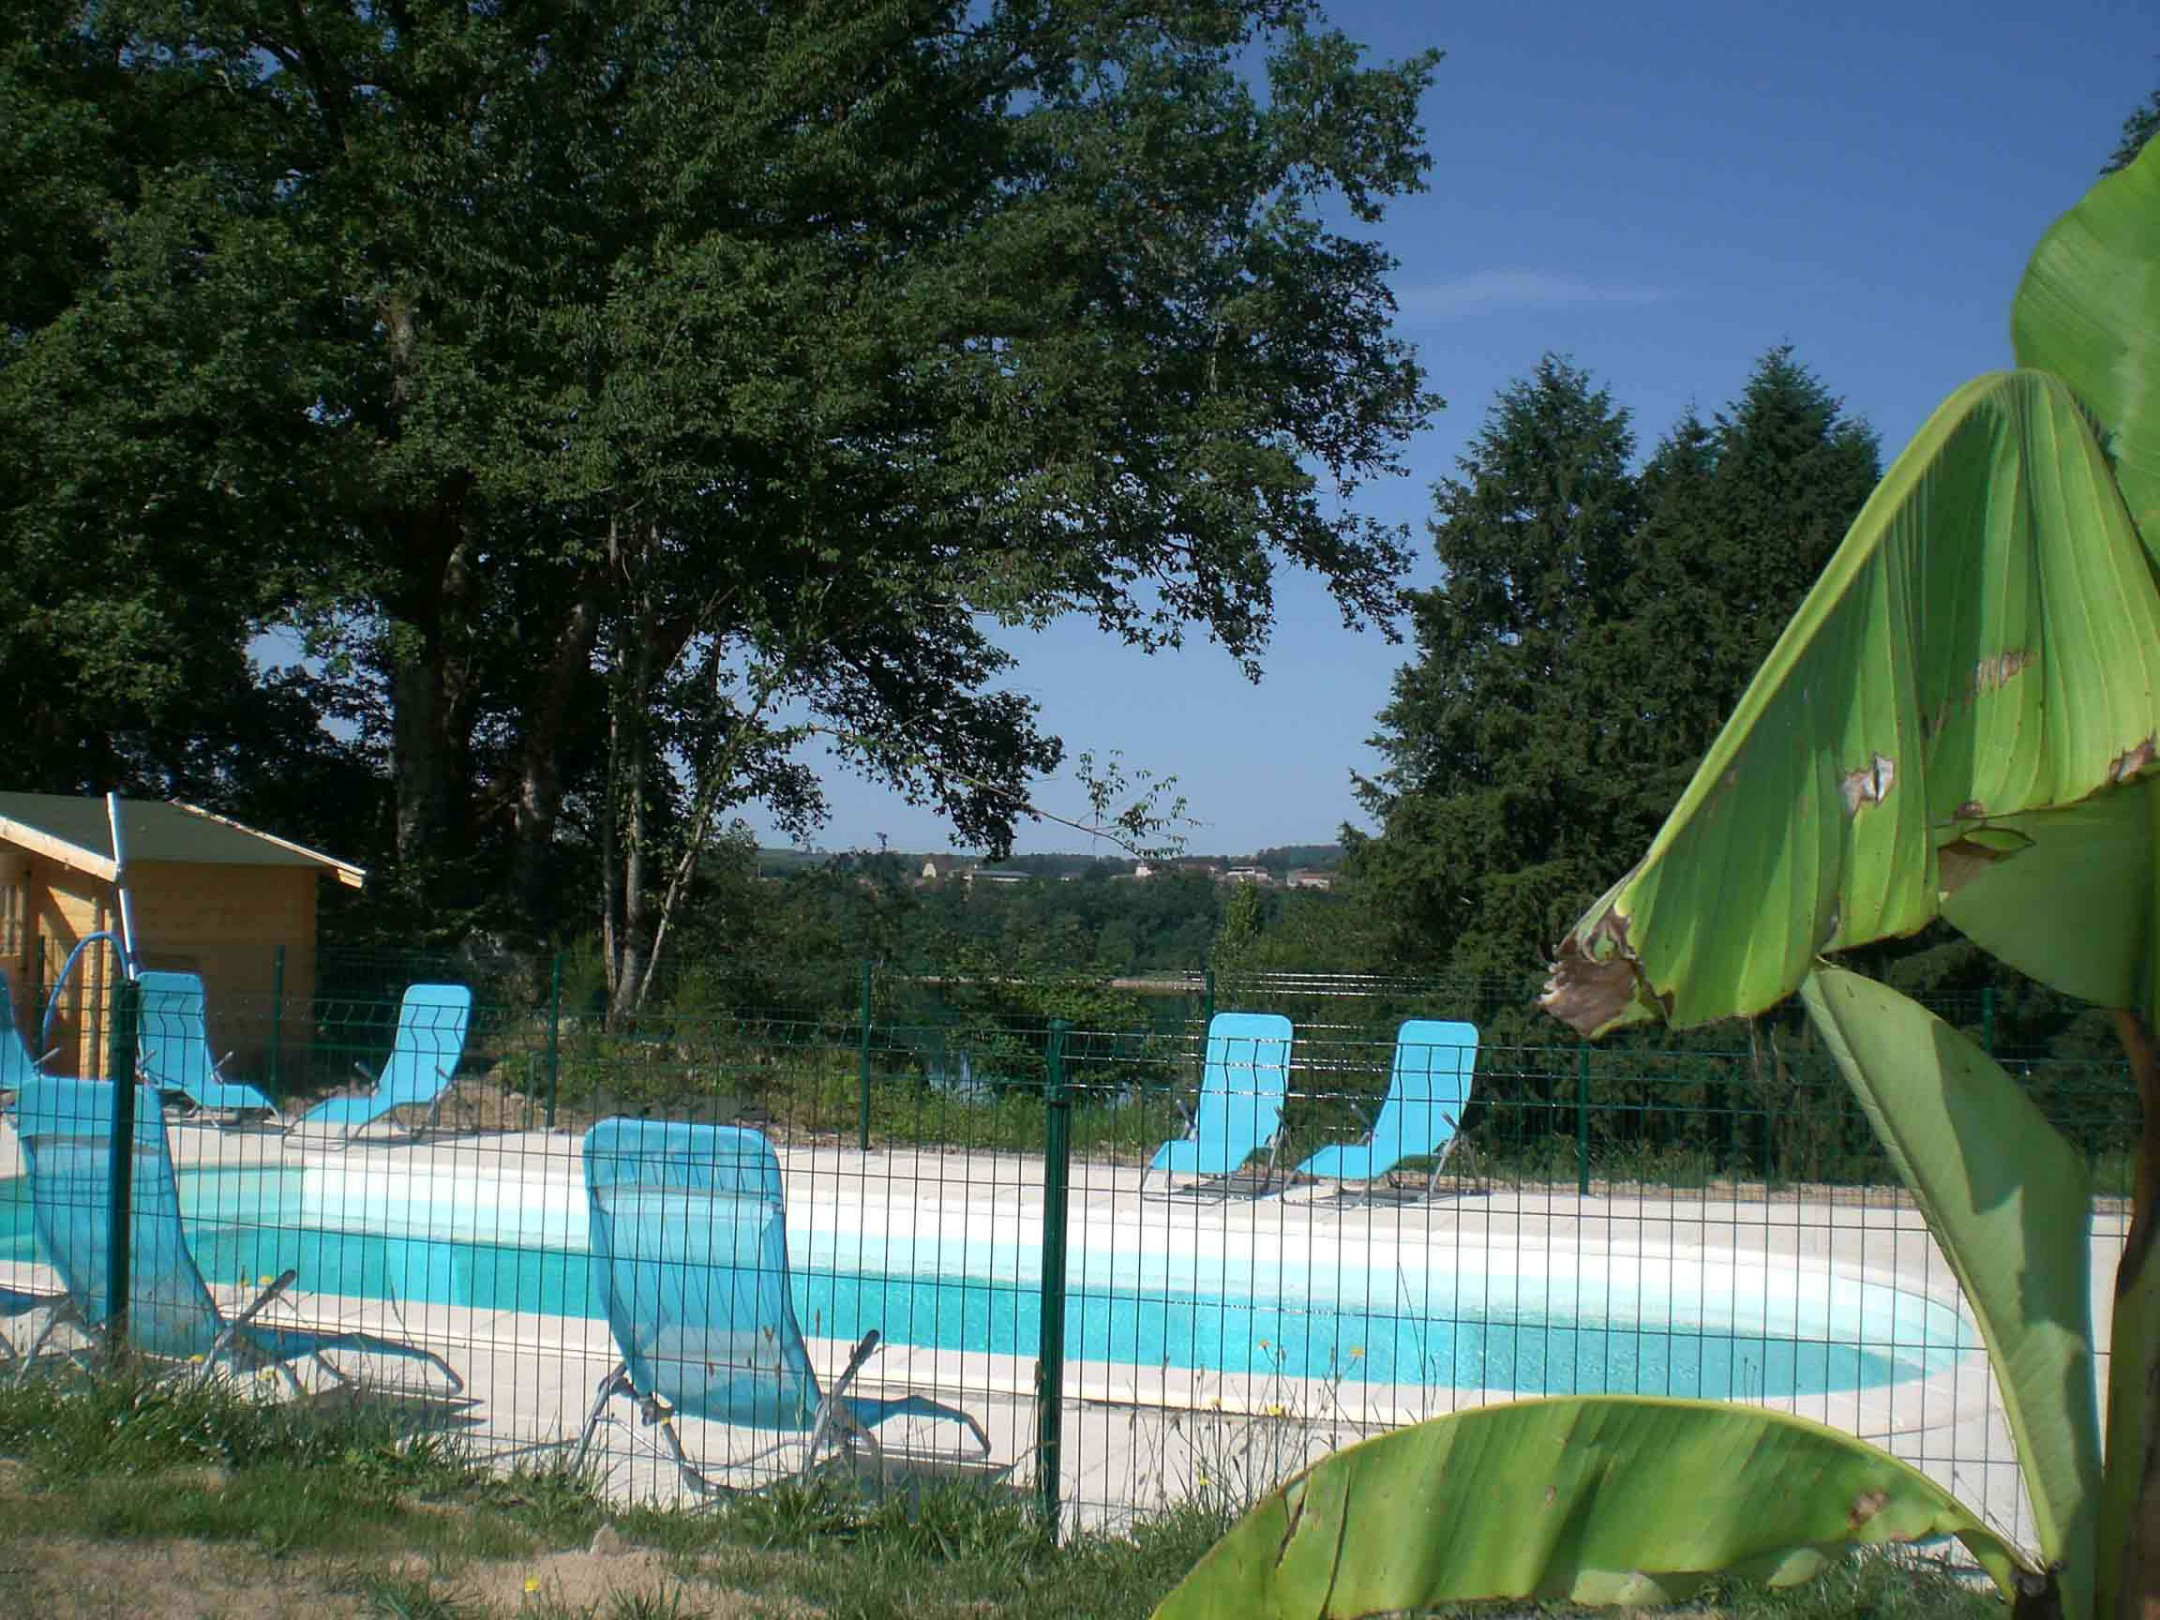 Camping cantal le domaine du lac saint etienne cantales for Cantal camping avec piscine